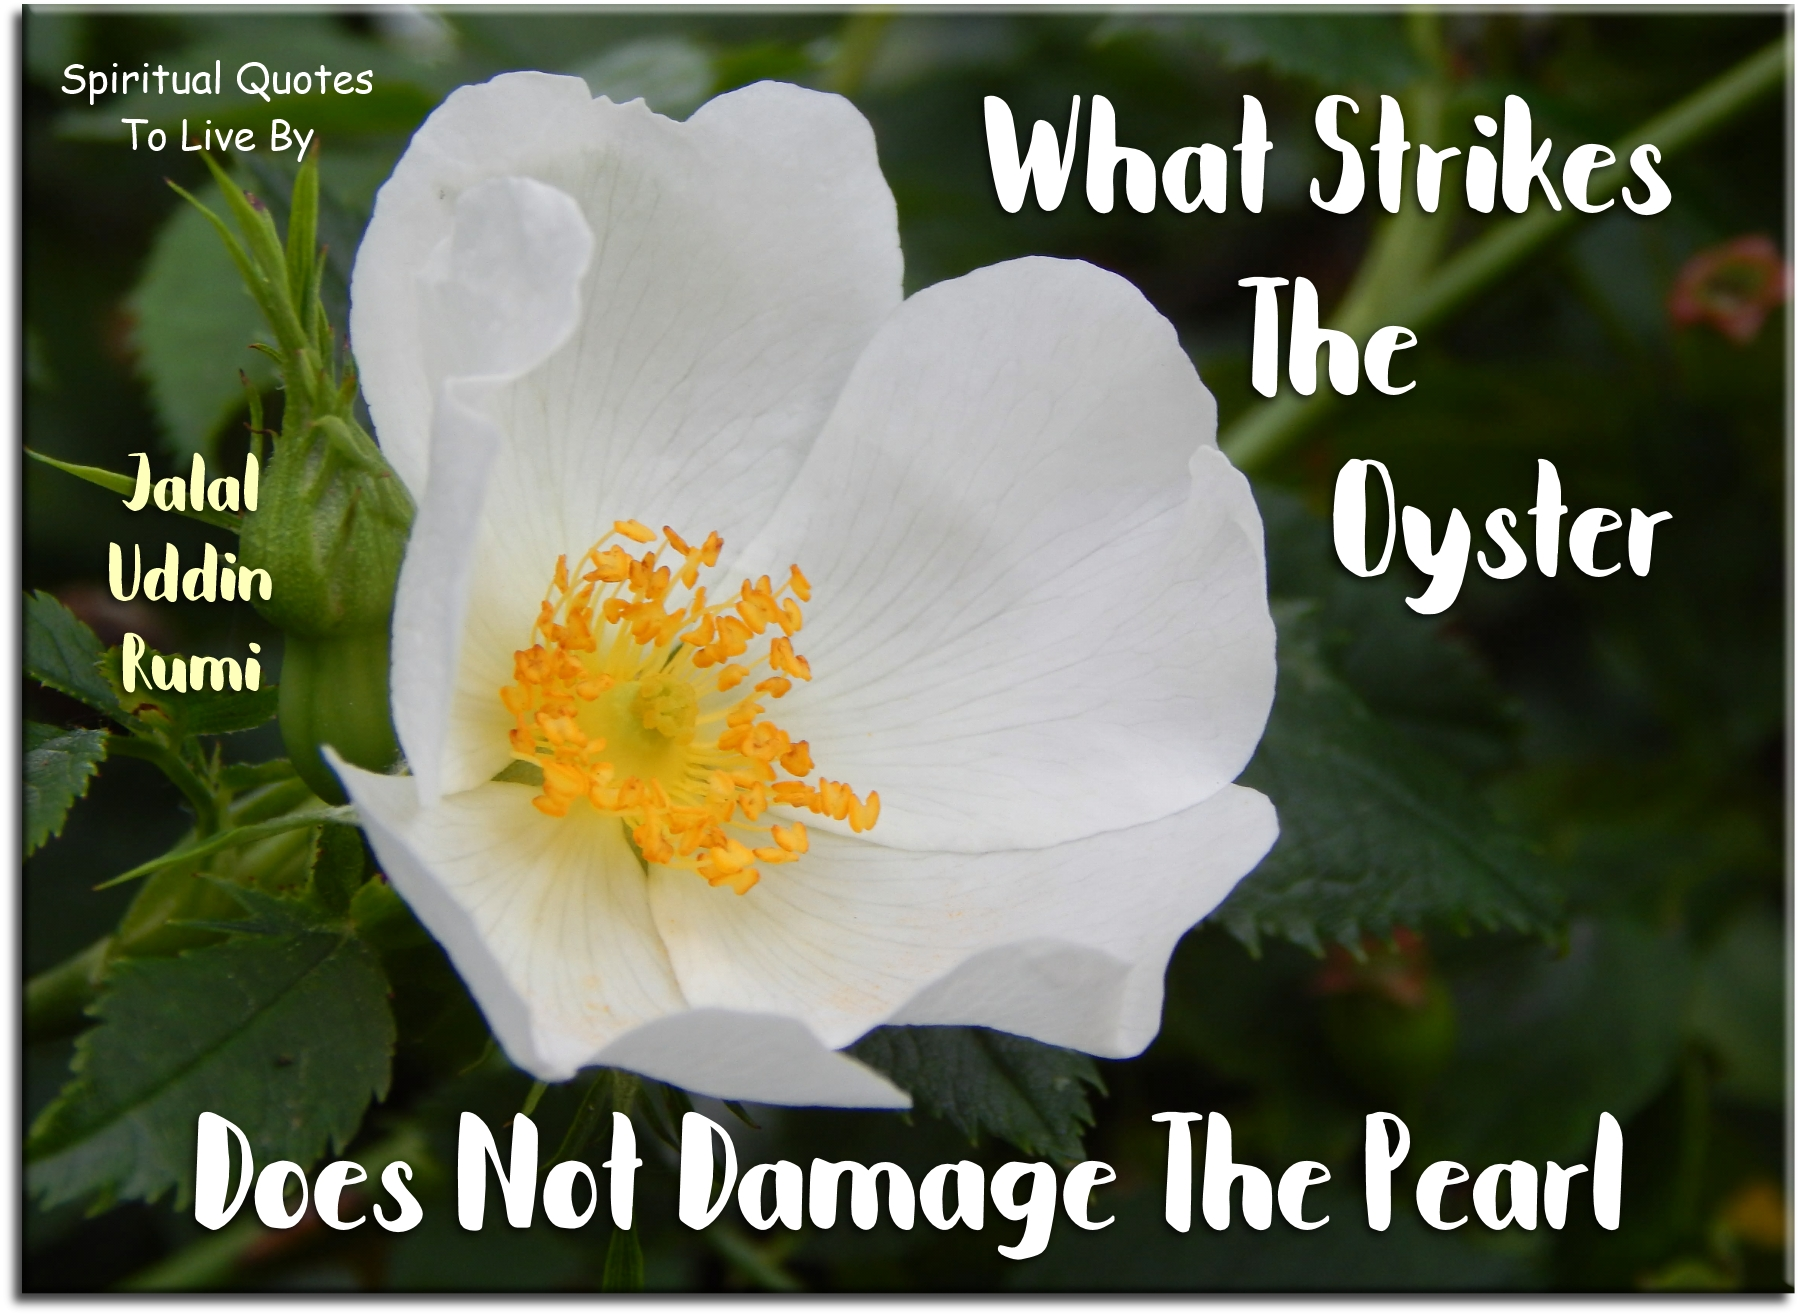 Jalal Uddin Rumi quote: What strikes the oyster does not damage the pearl. - Spiritual Quotes To Live By